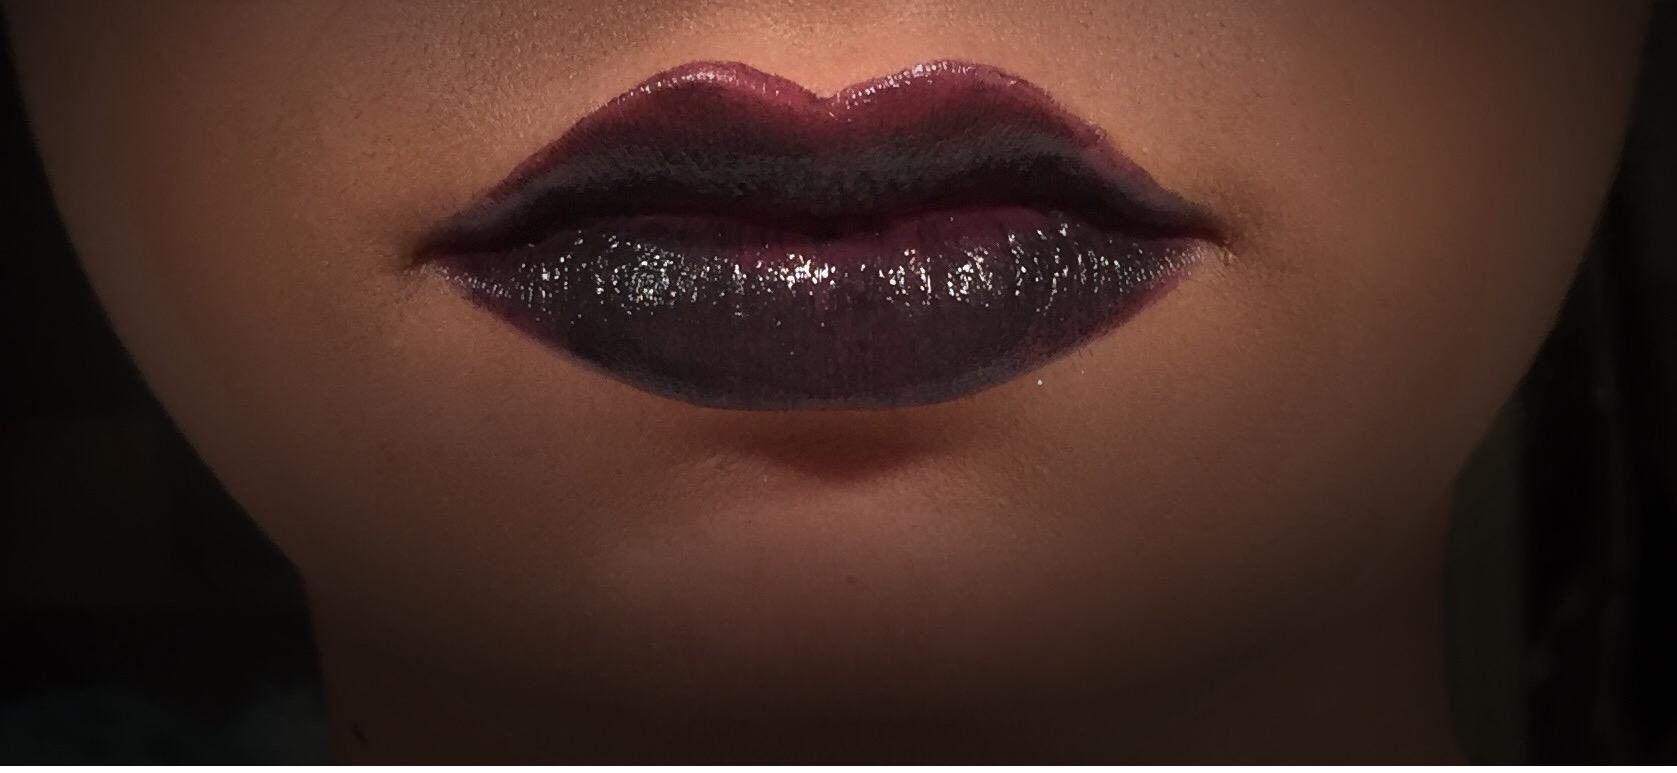 During the fall and winter time, dark lips start to reach their peak.